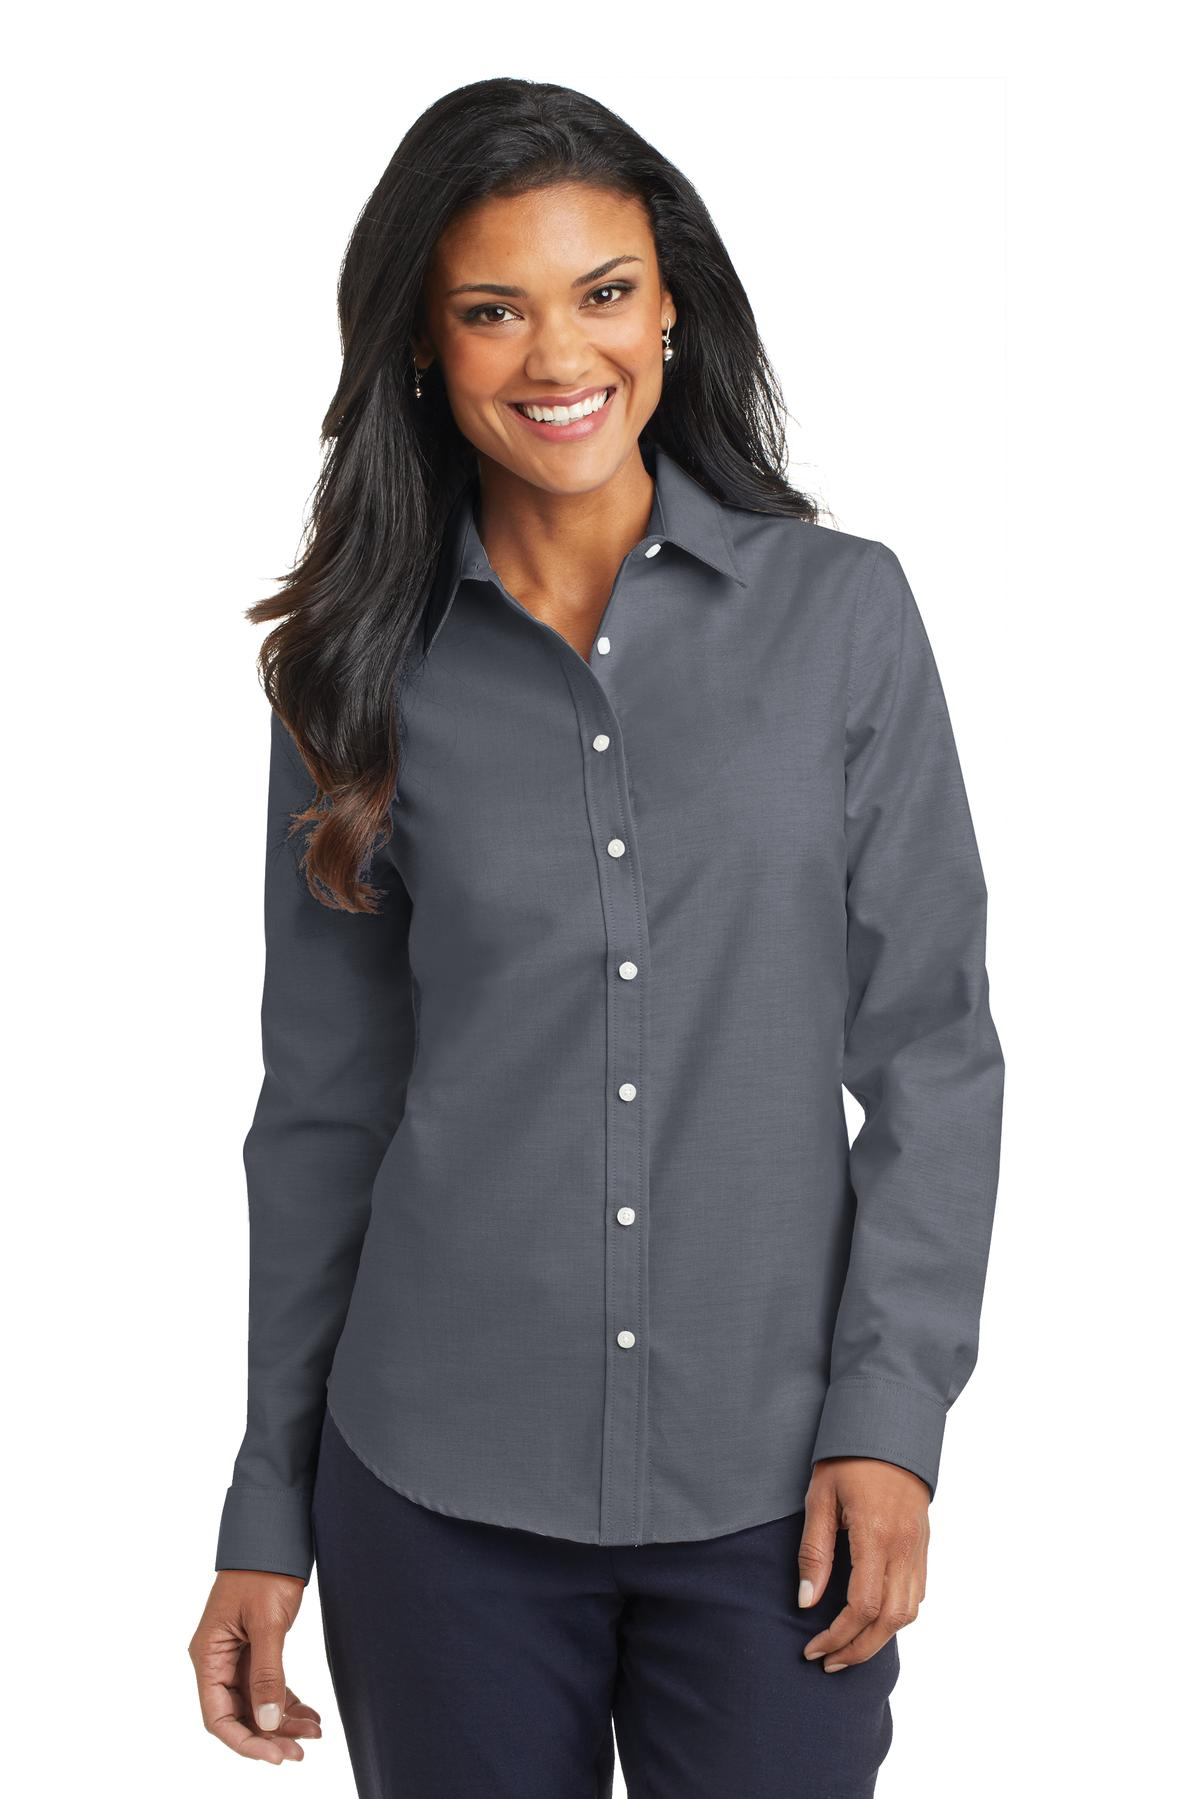 Awesome Port Authority Womenu0026#39;s Short Sleeve SuperPro Oxford Shirt. L659.